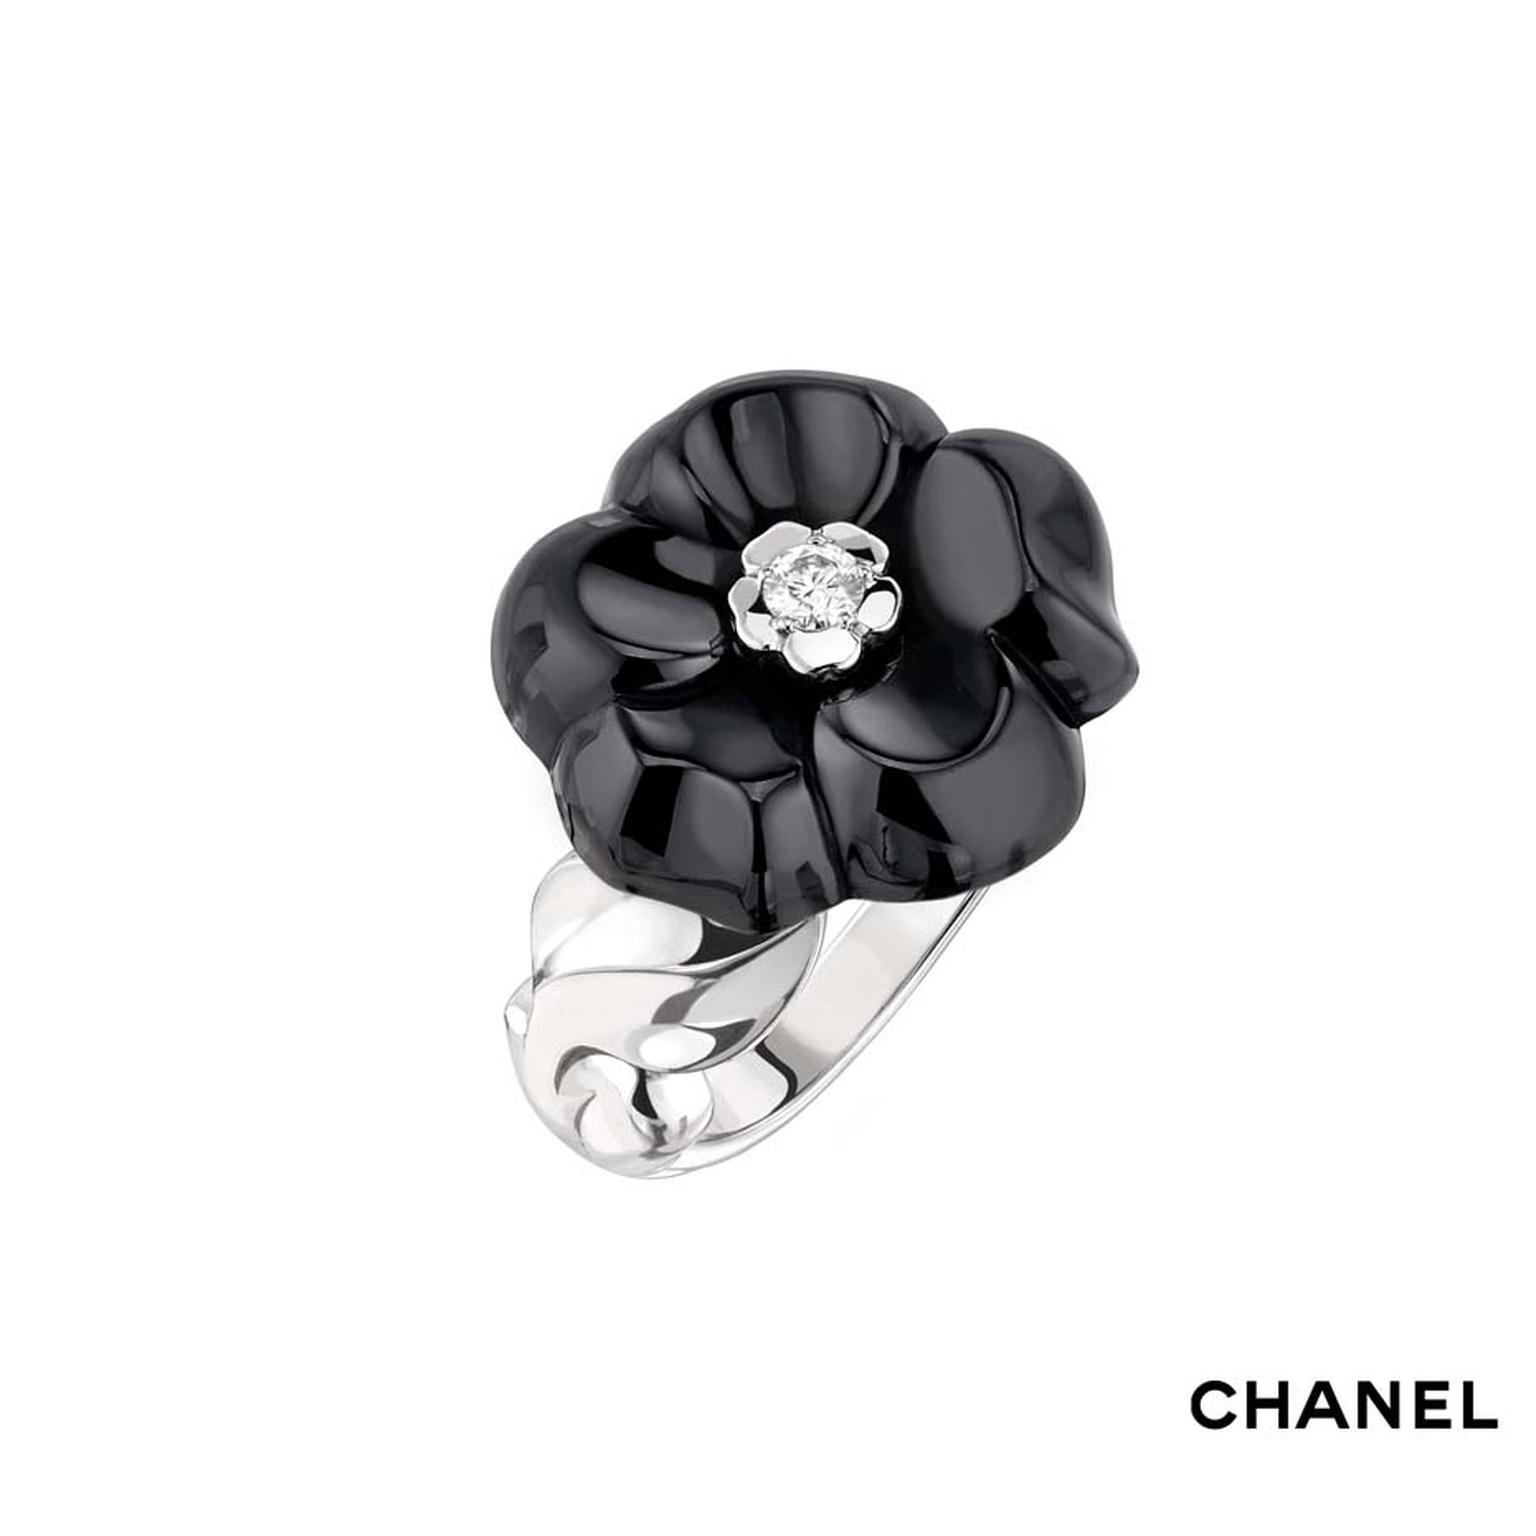 Chanel Camélia Galbé small black ceramic ring in white gold with a central brilliant-cut diamond